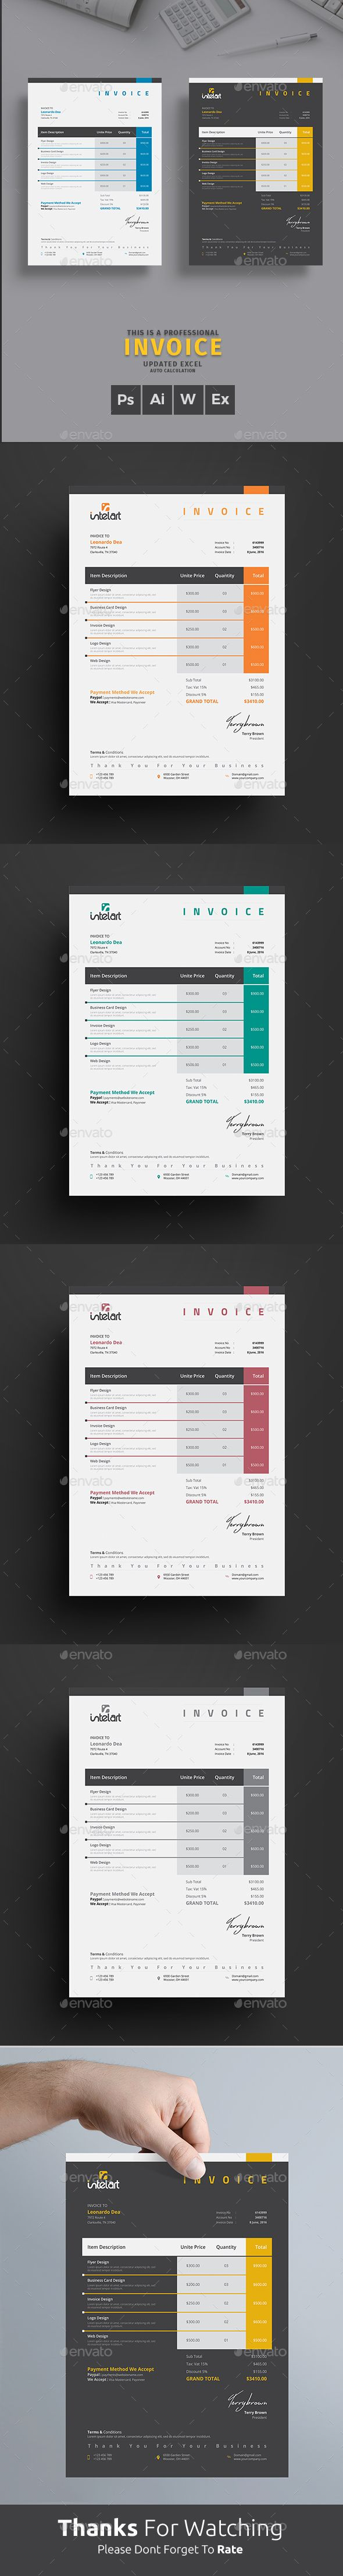 Invoice by themedevisers Invoice Excel Template. Use this Clean Invoice for personal, corporate or company billing purpose. This Simple Invoice will help